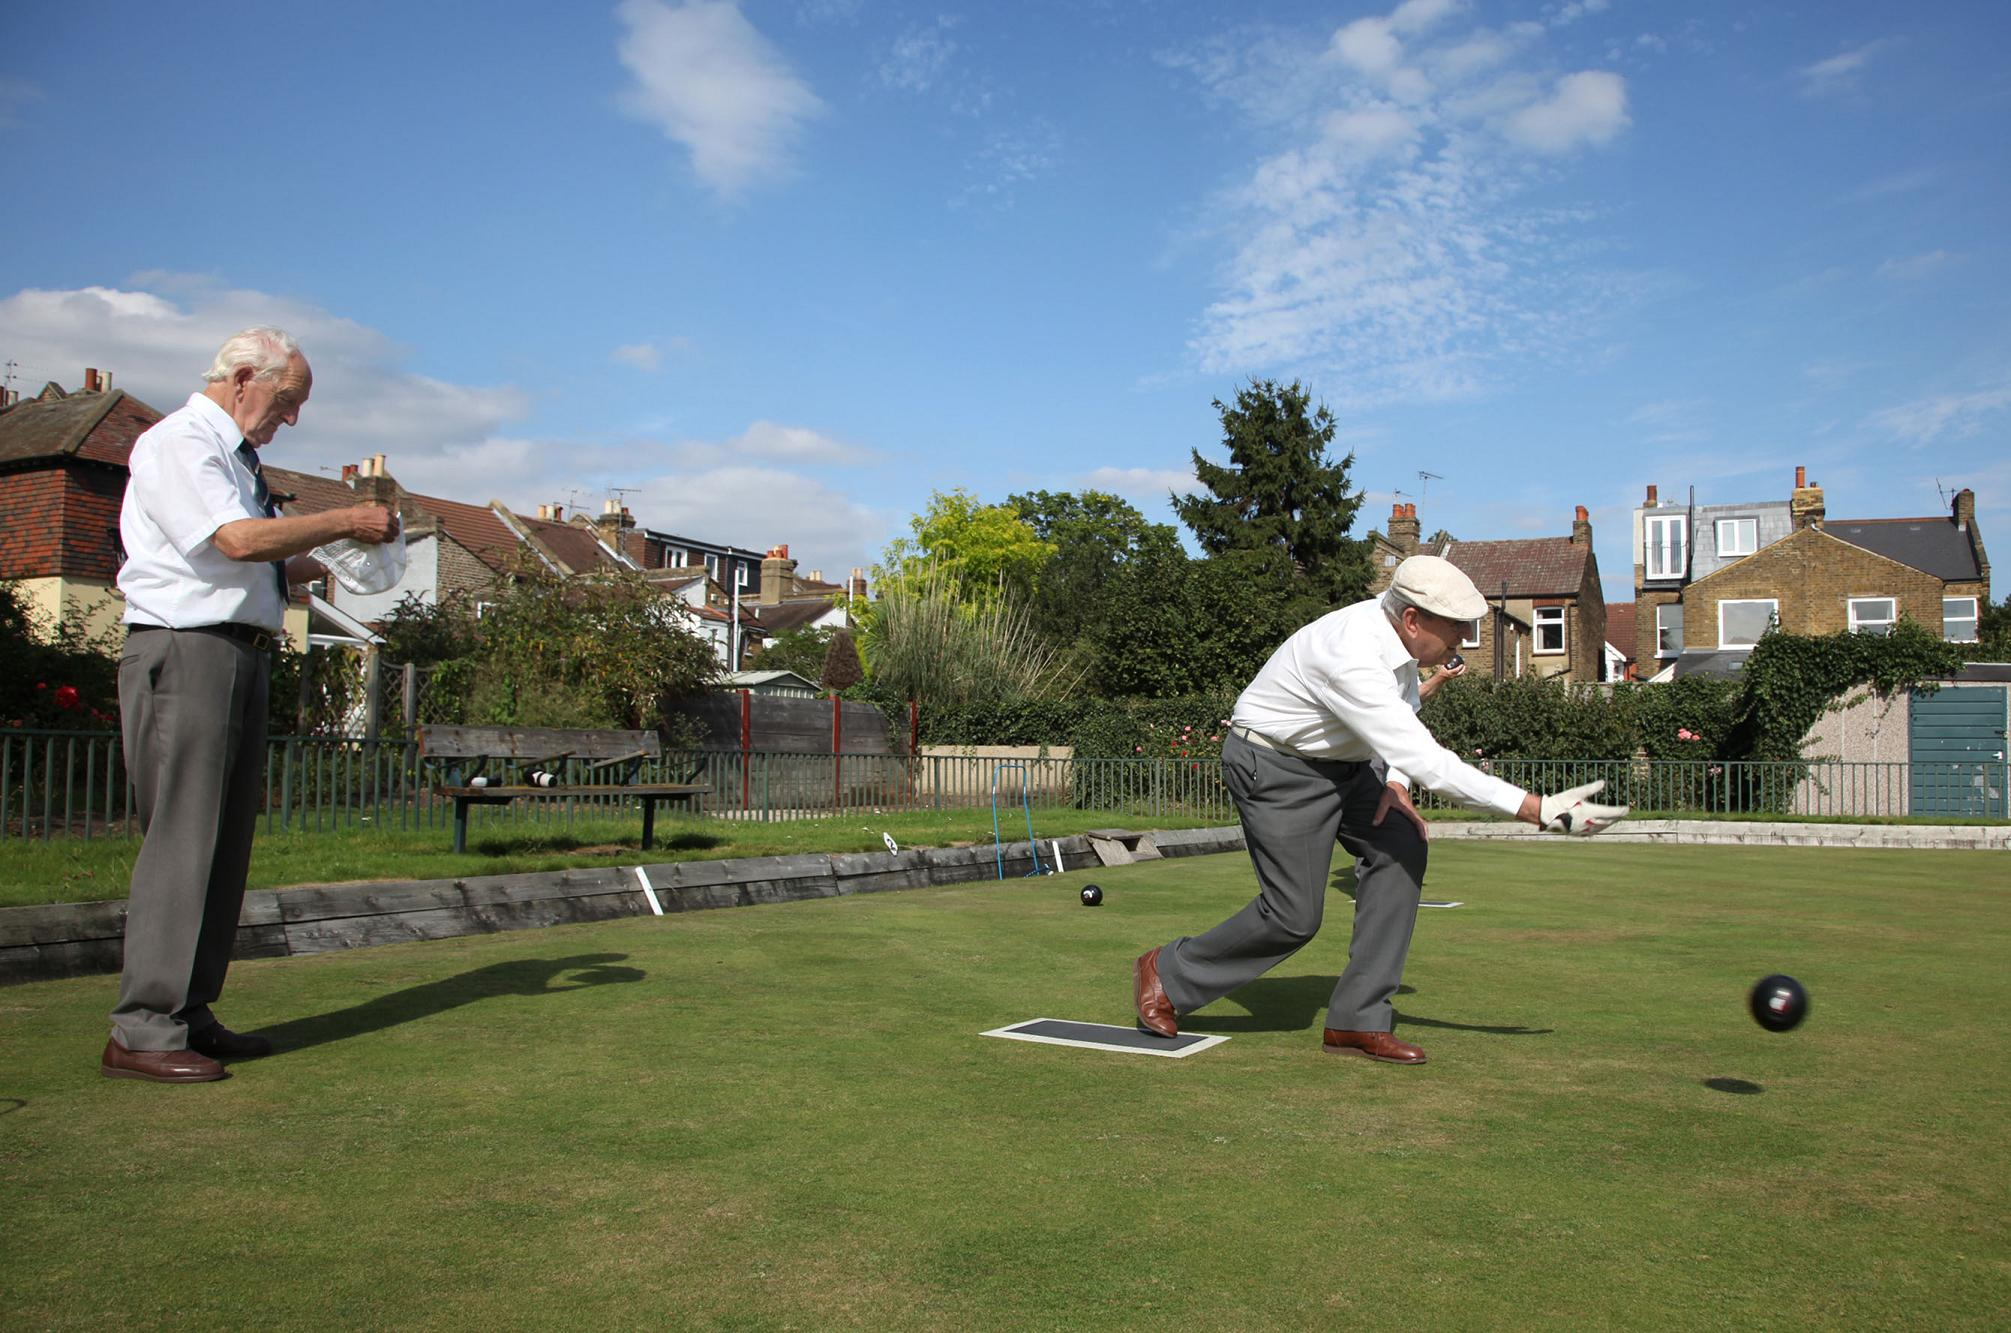 Bowling club set to close after 100 years